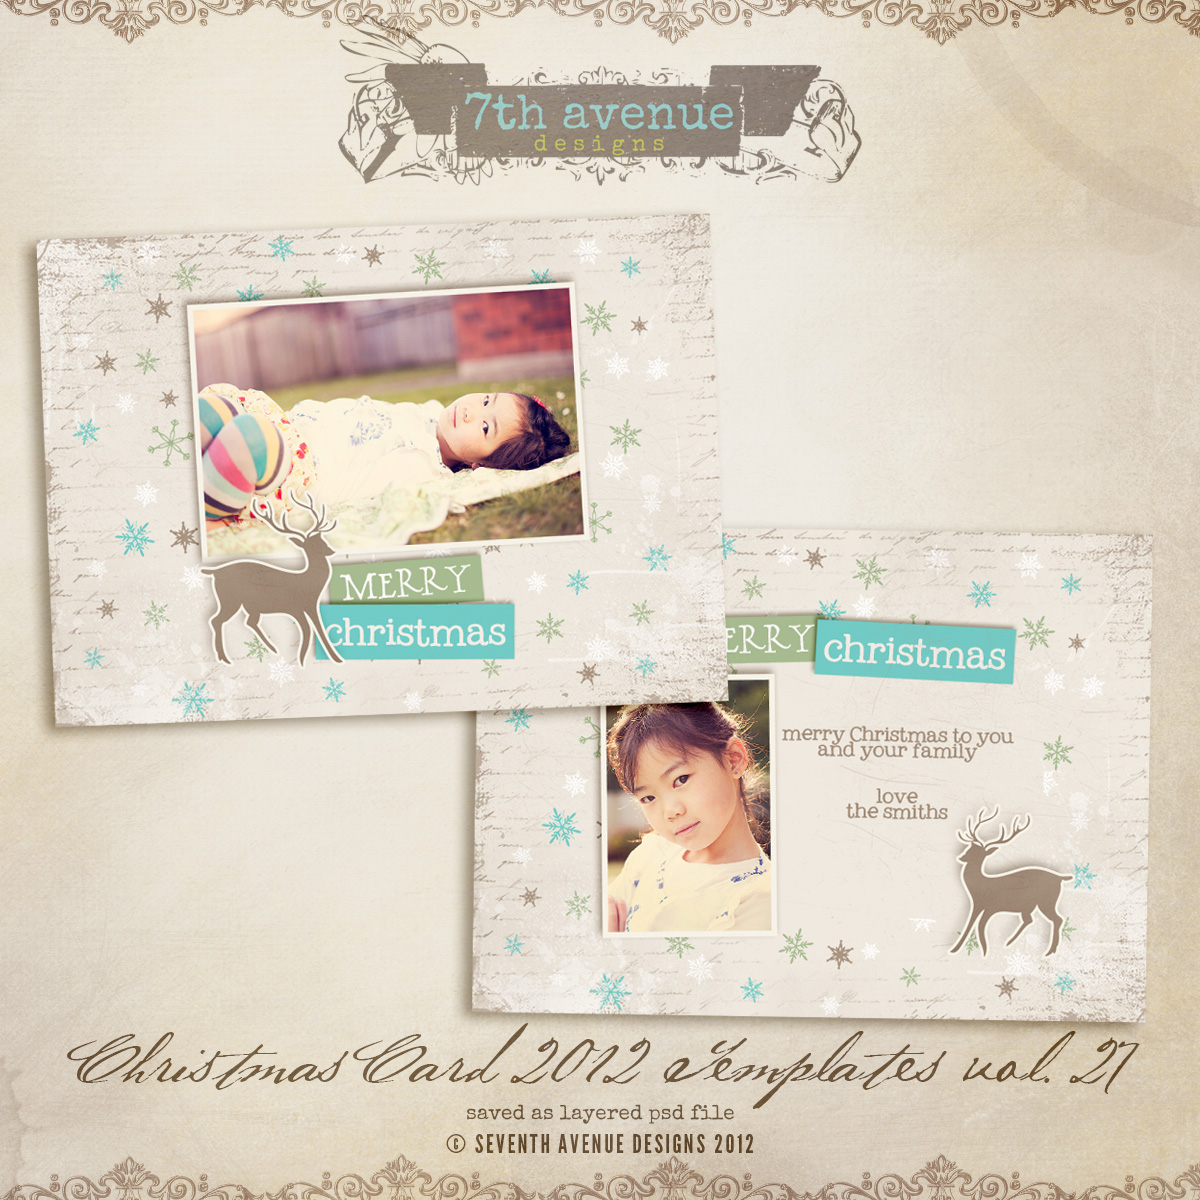 2012 Christmas Card Templates vol.27 -- 7x5 inch card template